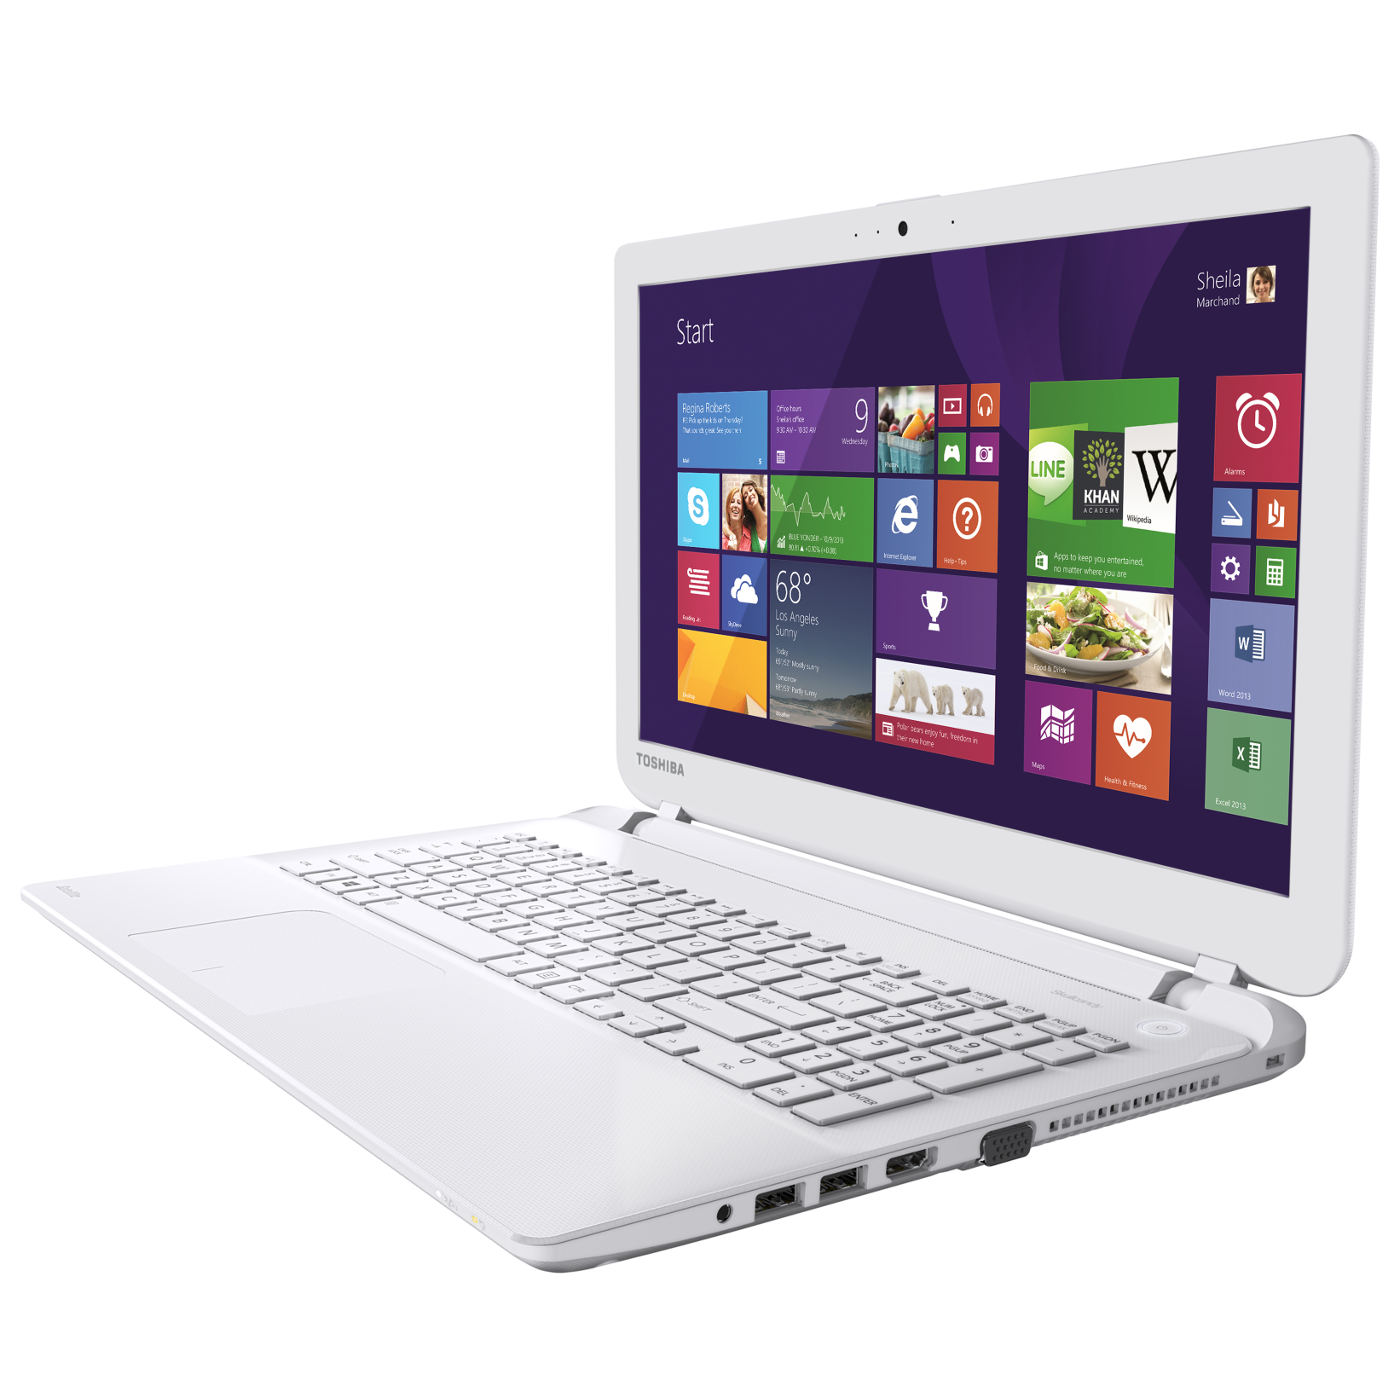 "PC portable Toshiba Satellite L50-B-192 Blanc Intel® Core™ i7-4500U 4 Go 750 Go 15.6"" LED HD AMD Radeon R7 M260 Graveur DVD Wi-Fi N/Bluetooth Webcam Windows 8.1 64 bits"